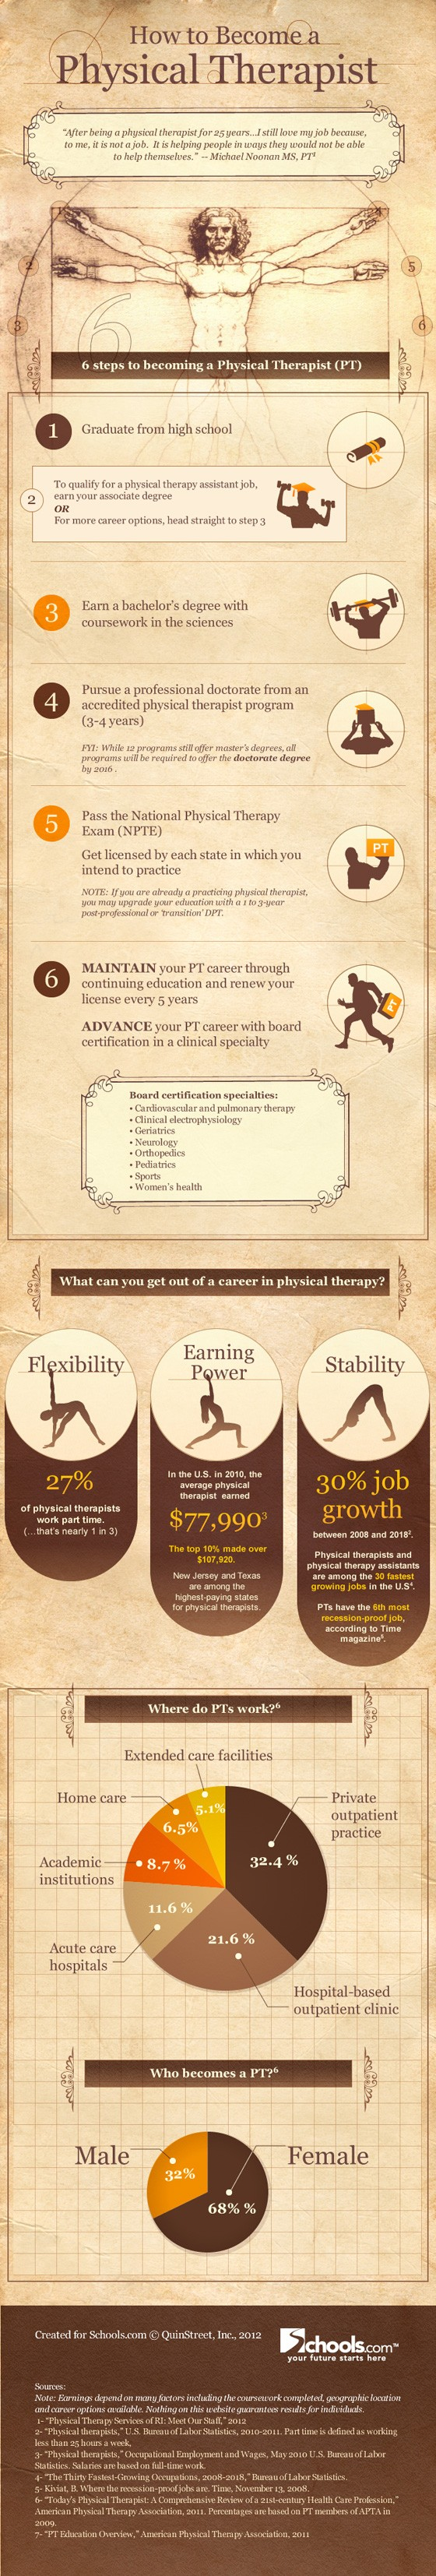 Is it harder to become a doctor or a physical therapist?